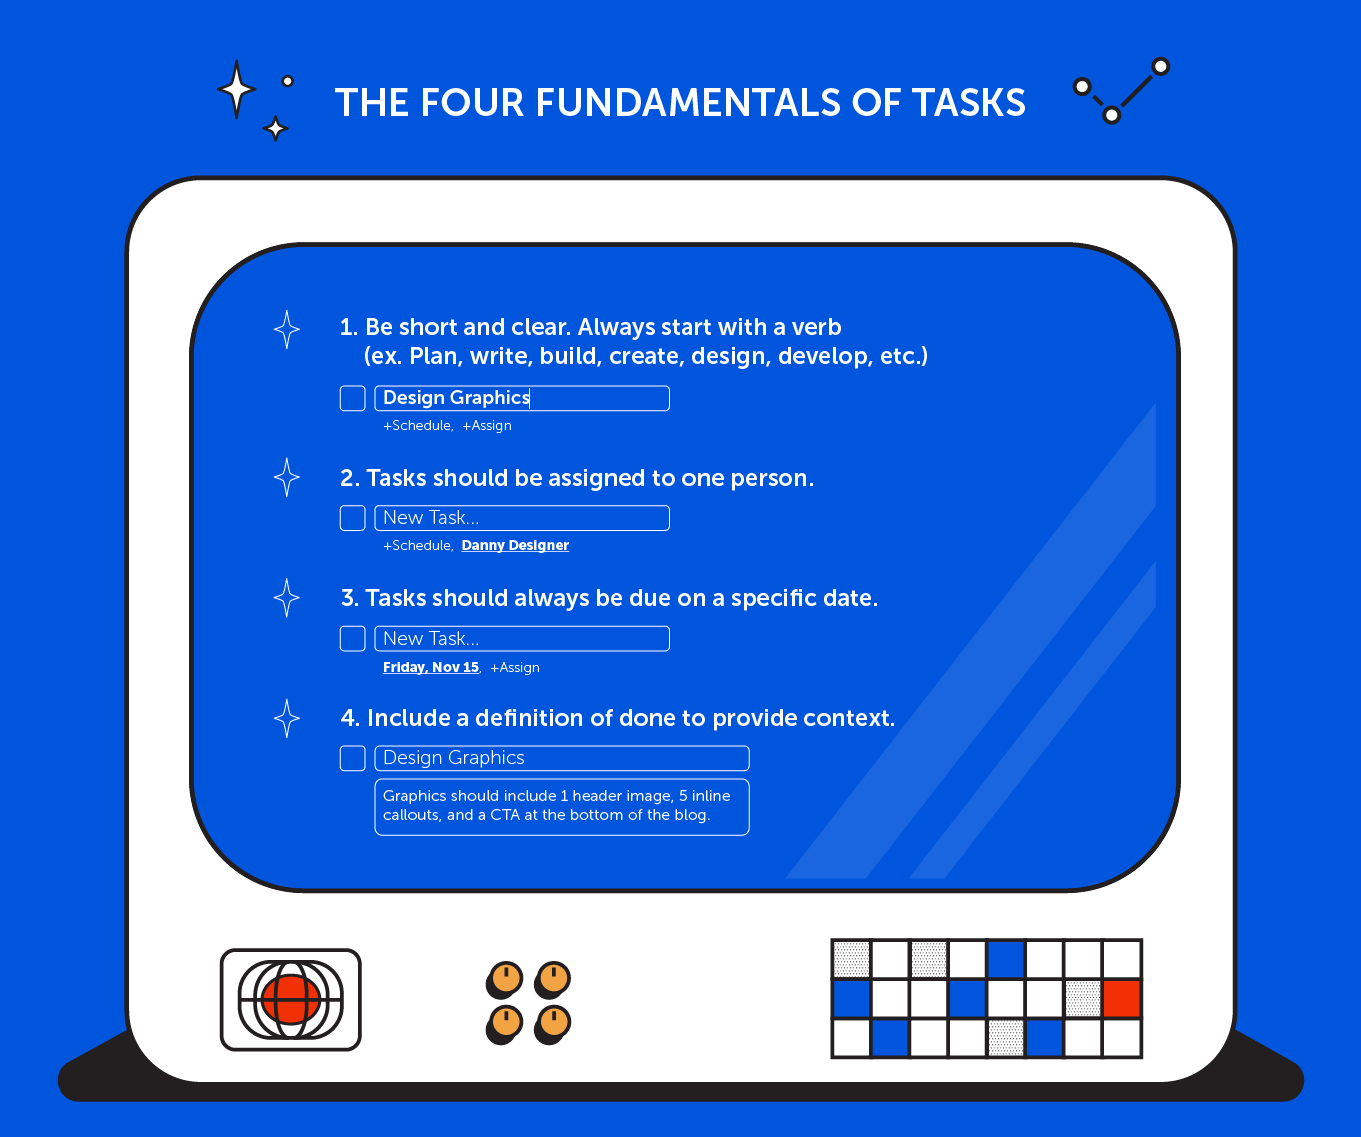 Four fundamentals of tasks. 1. Be short and clear 2. Tasks should be assigned to one person. 3. Tasks should always be due on a specific date. 4.  Include a definition of done to provide context.